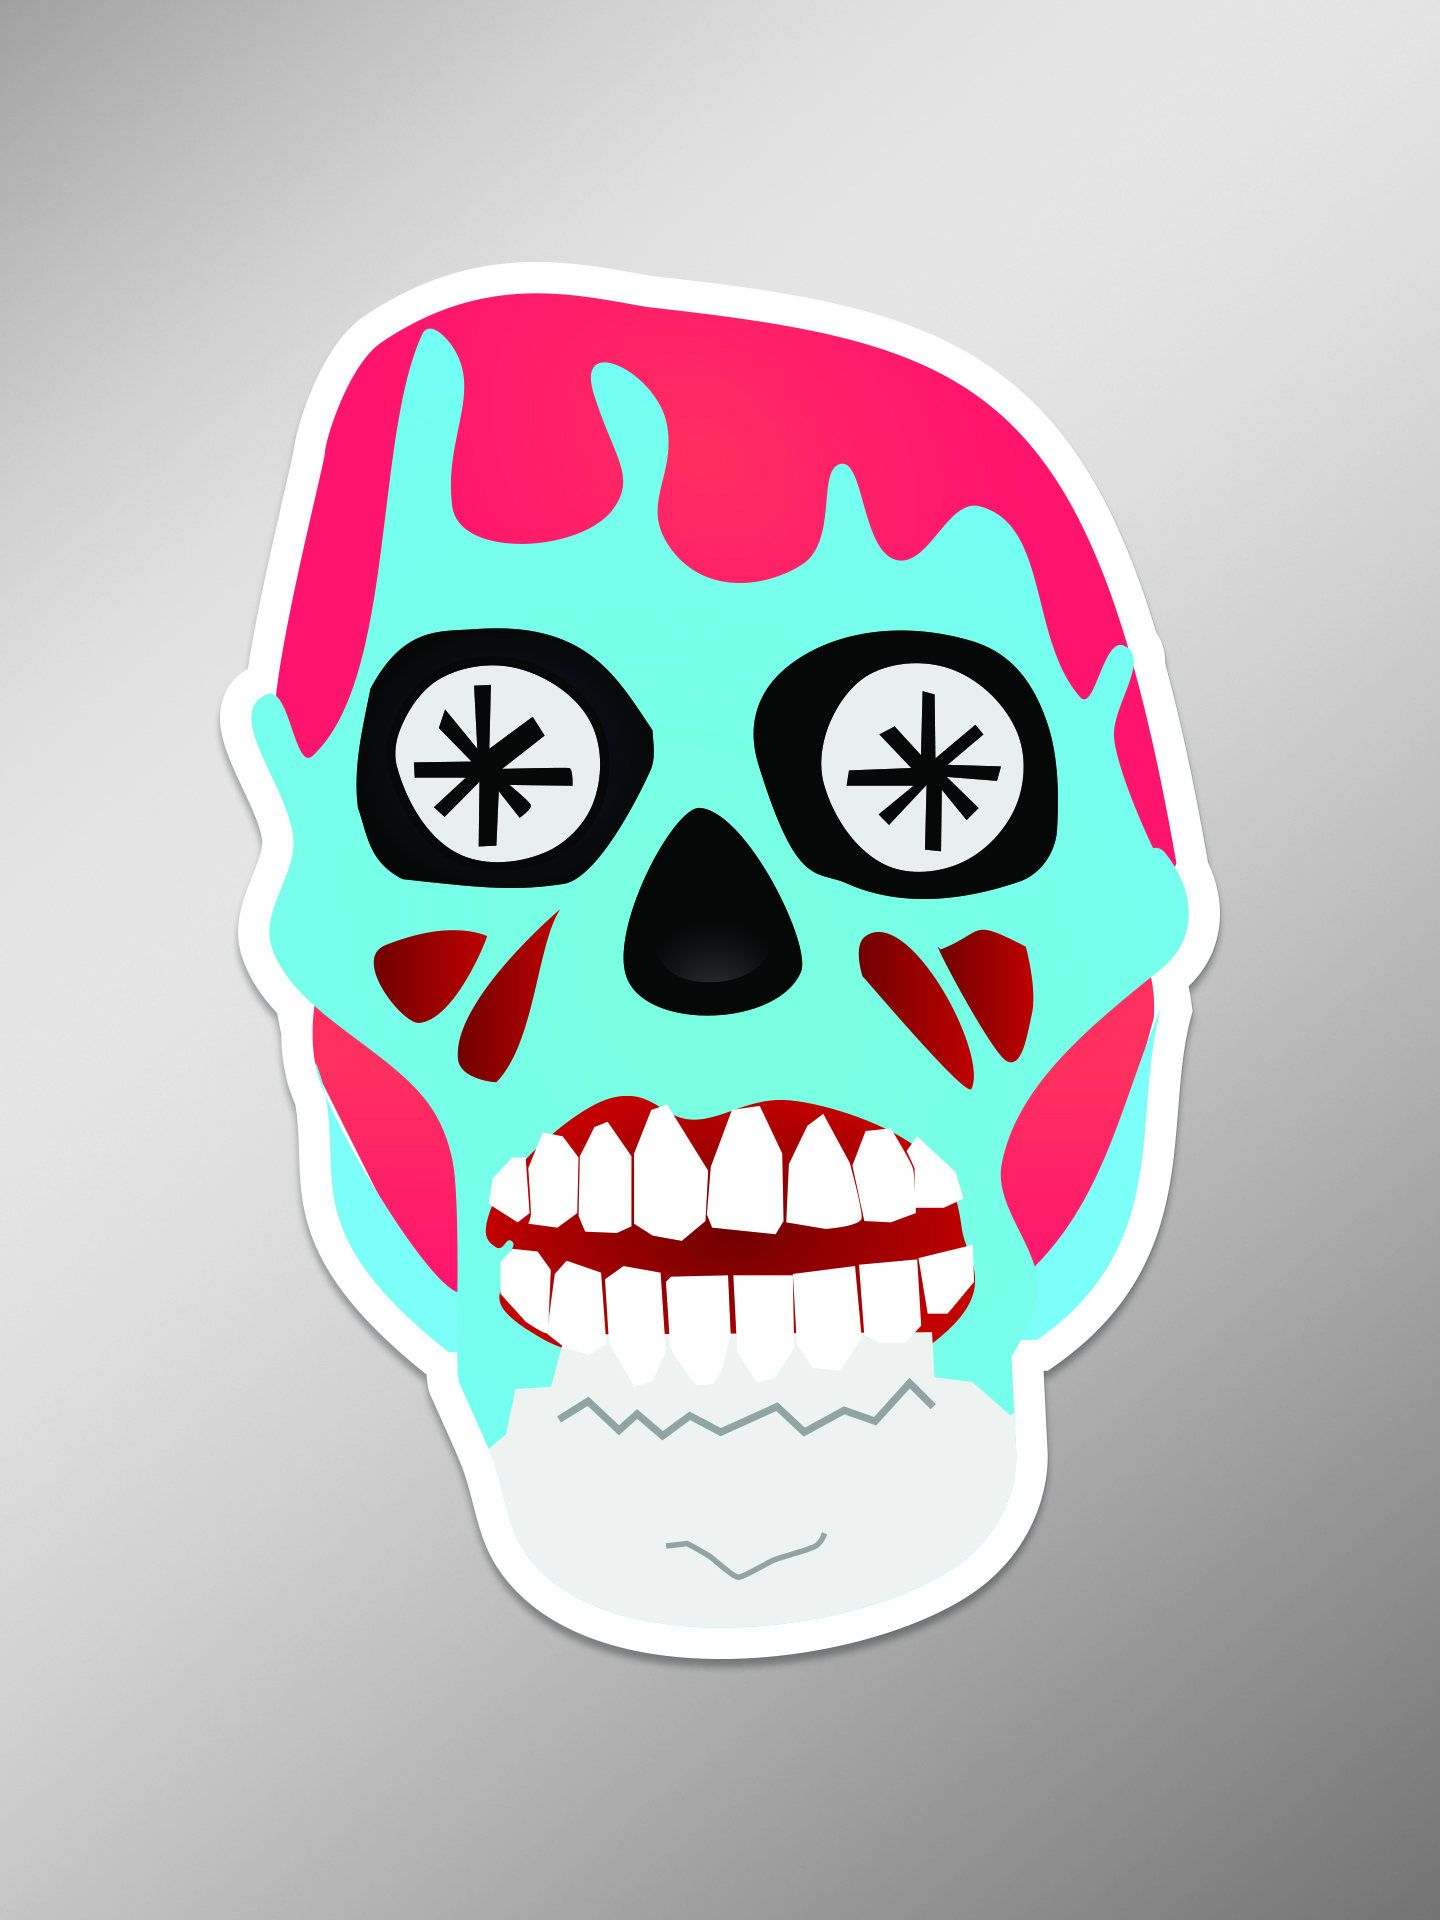 Zombie Sugar Skull Full Color 4 Inch Vinyl Laptop Decal By Castlepeakgraphics On Etsy Laptop Decal Skull Vinyl Decals